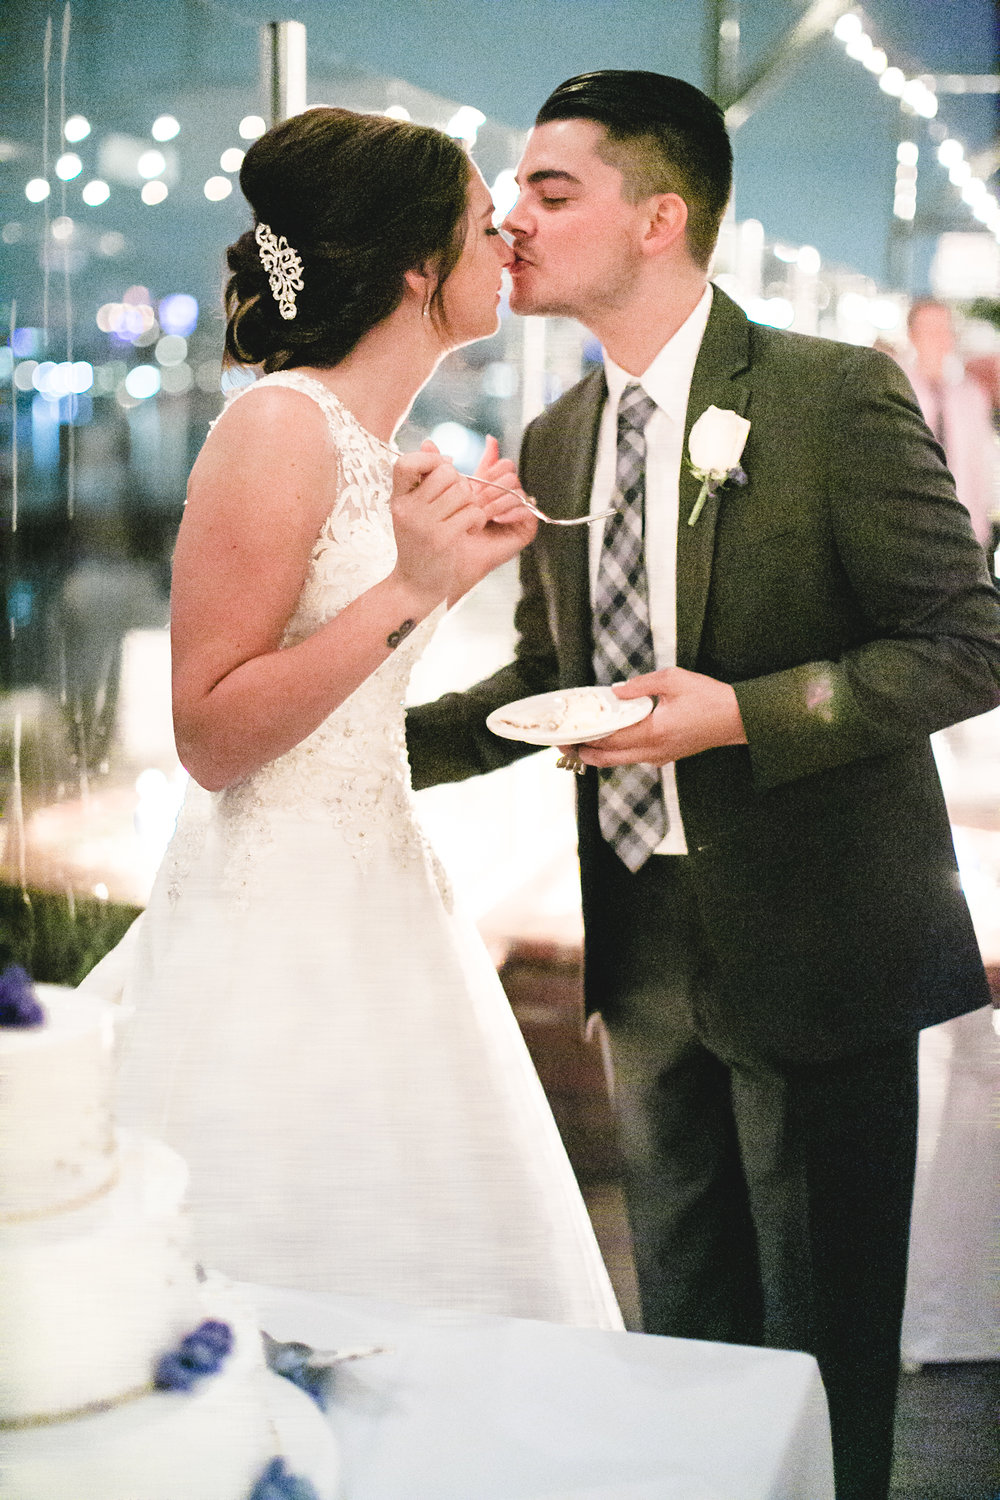 This was an adorable moment.  Aaron got just a bit of cake on her nose and kissed it all off :)